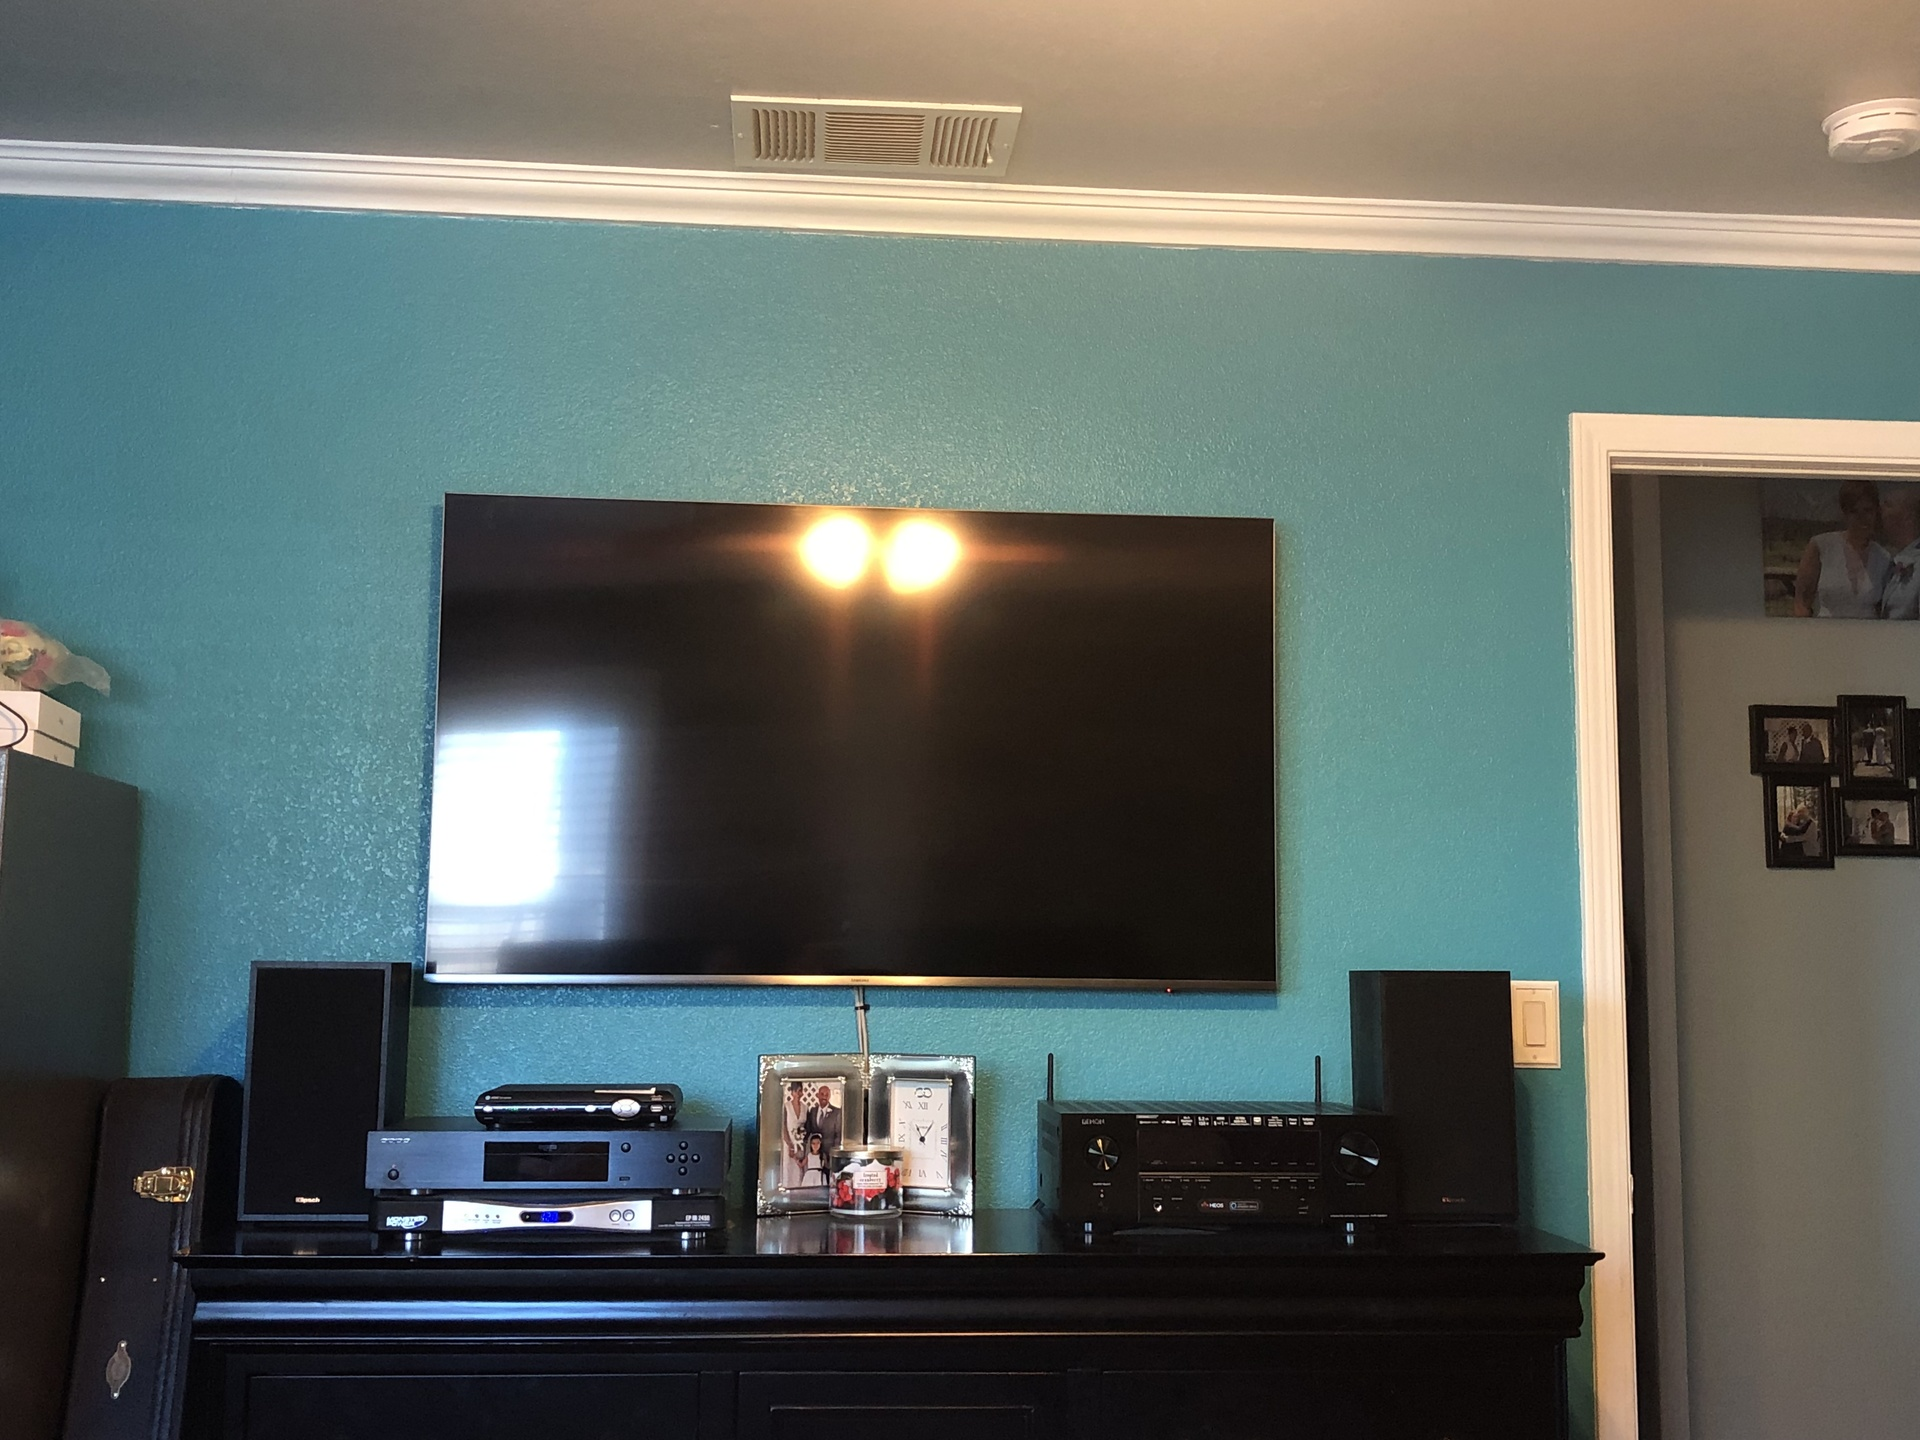 mj3k's Home Theater Gallery - mj3k's Paradigm, Klipsch Surround